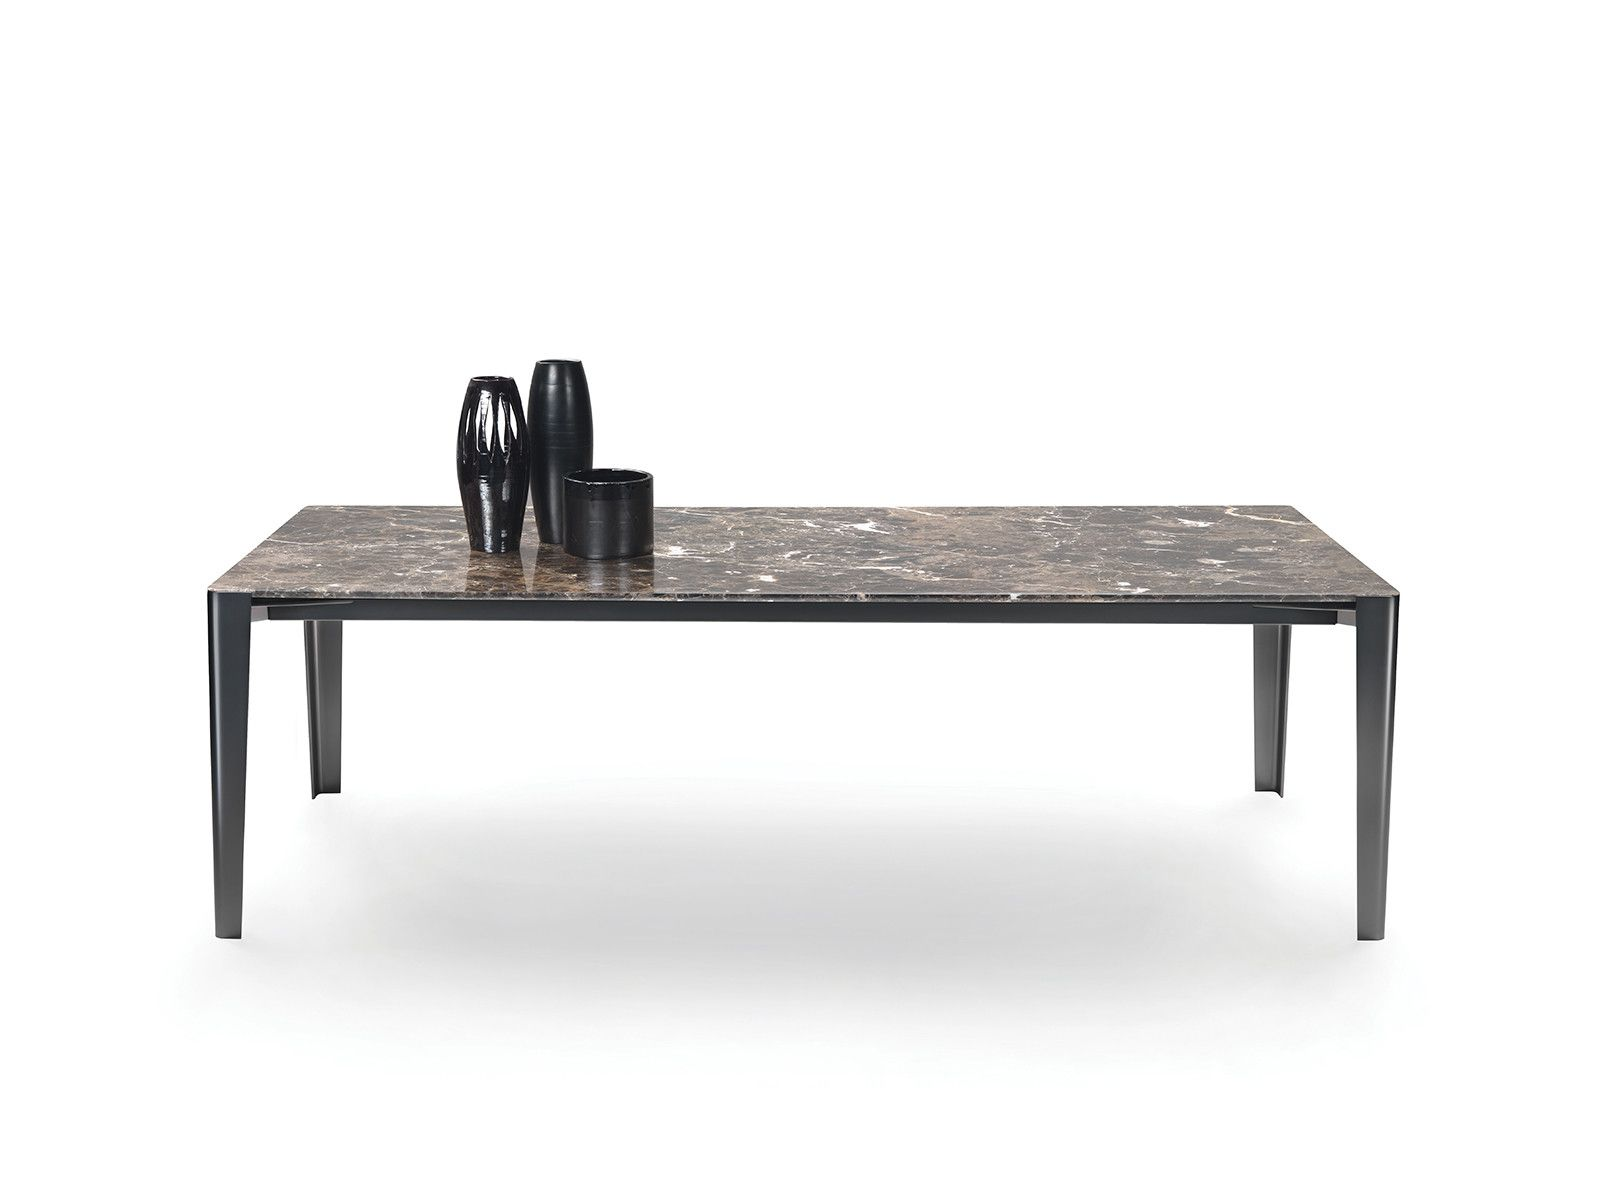 Iseo Dining Table Flexform Designed By Carlo Colombo The Iseo